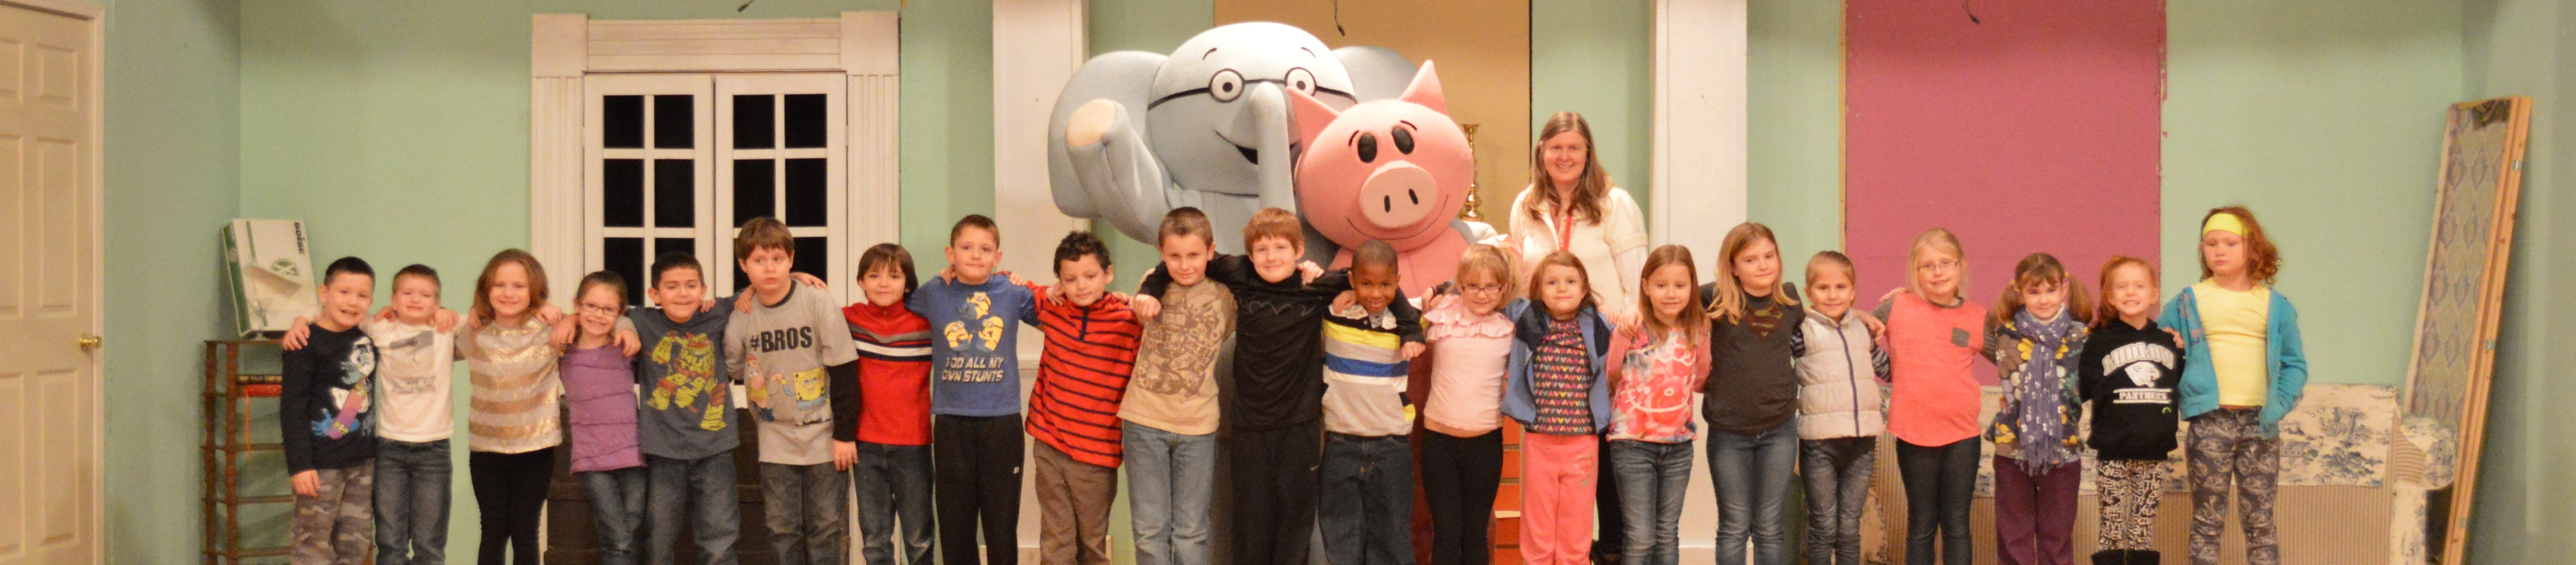 Elephant & Piggie visited our school!